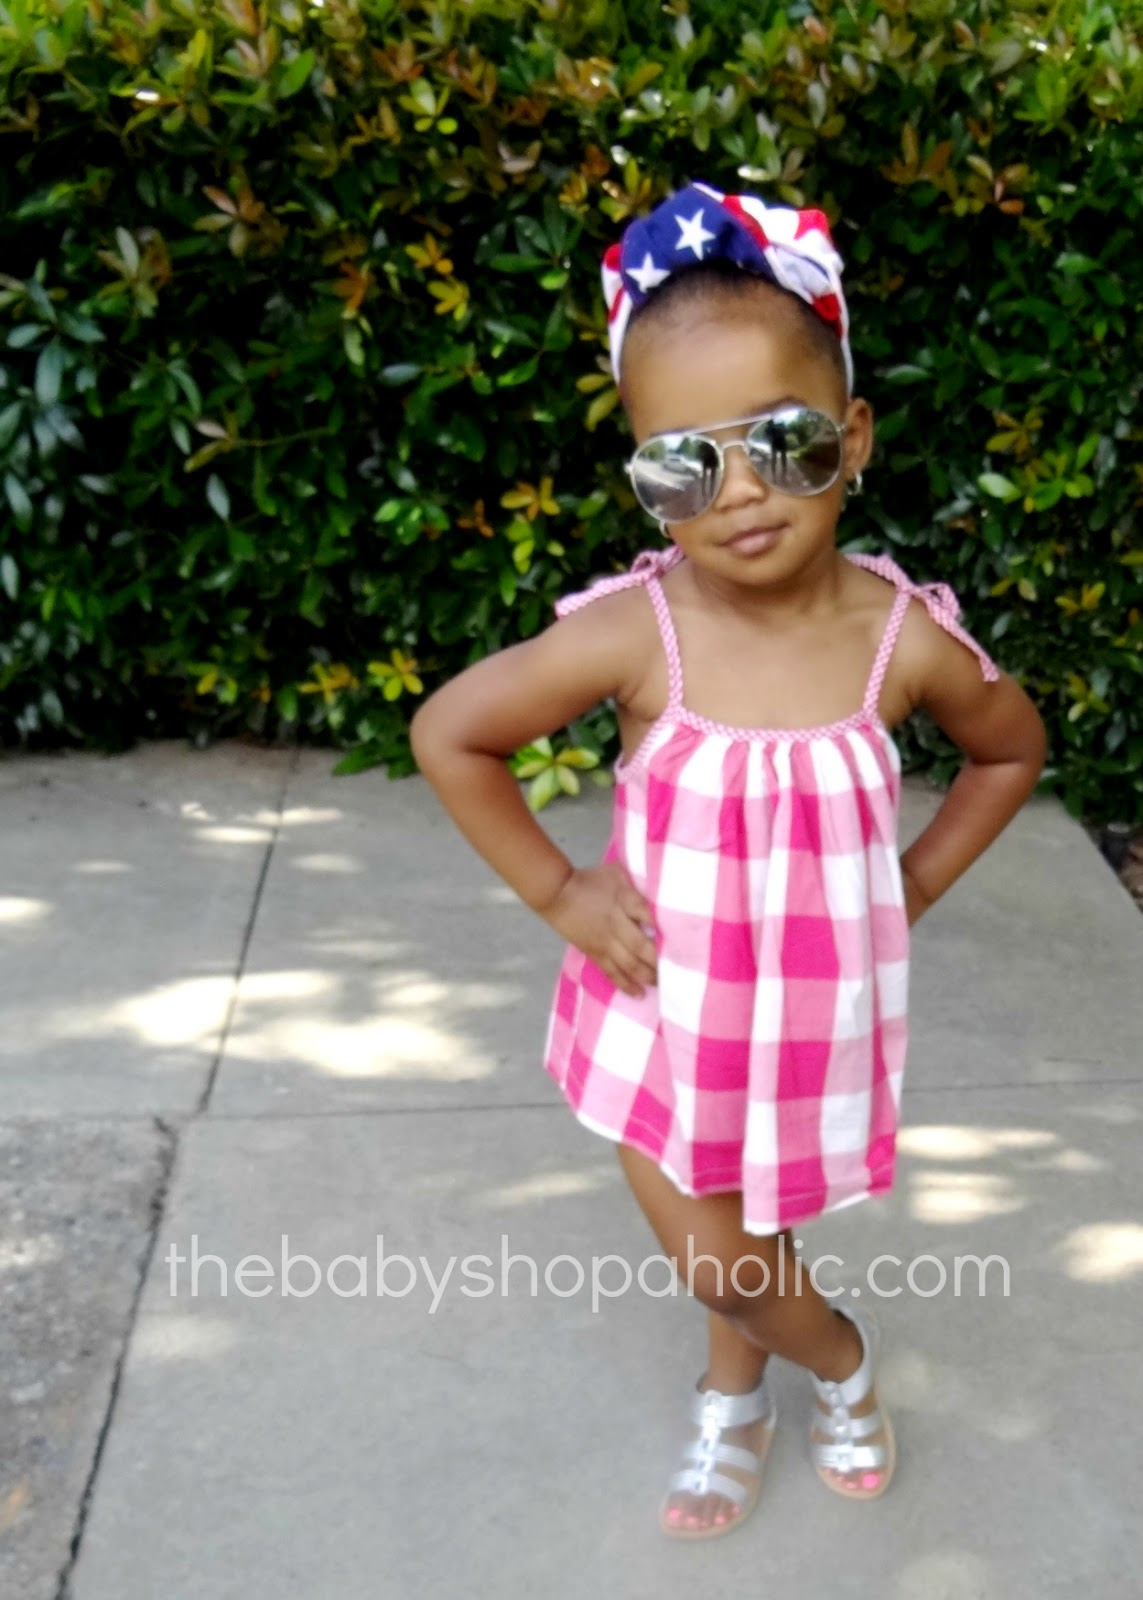 Fabkid 4th Of July Baby Shopaholic